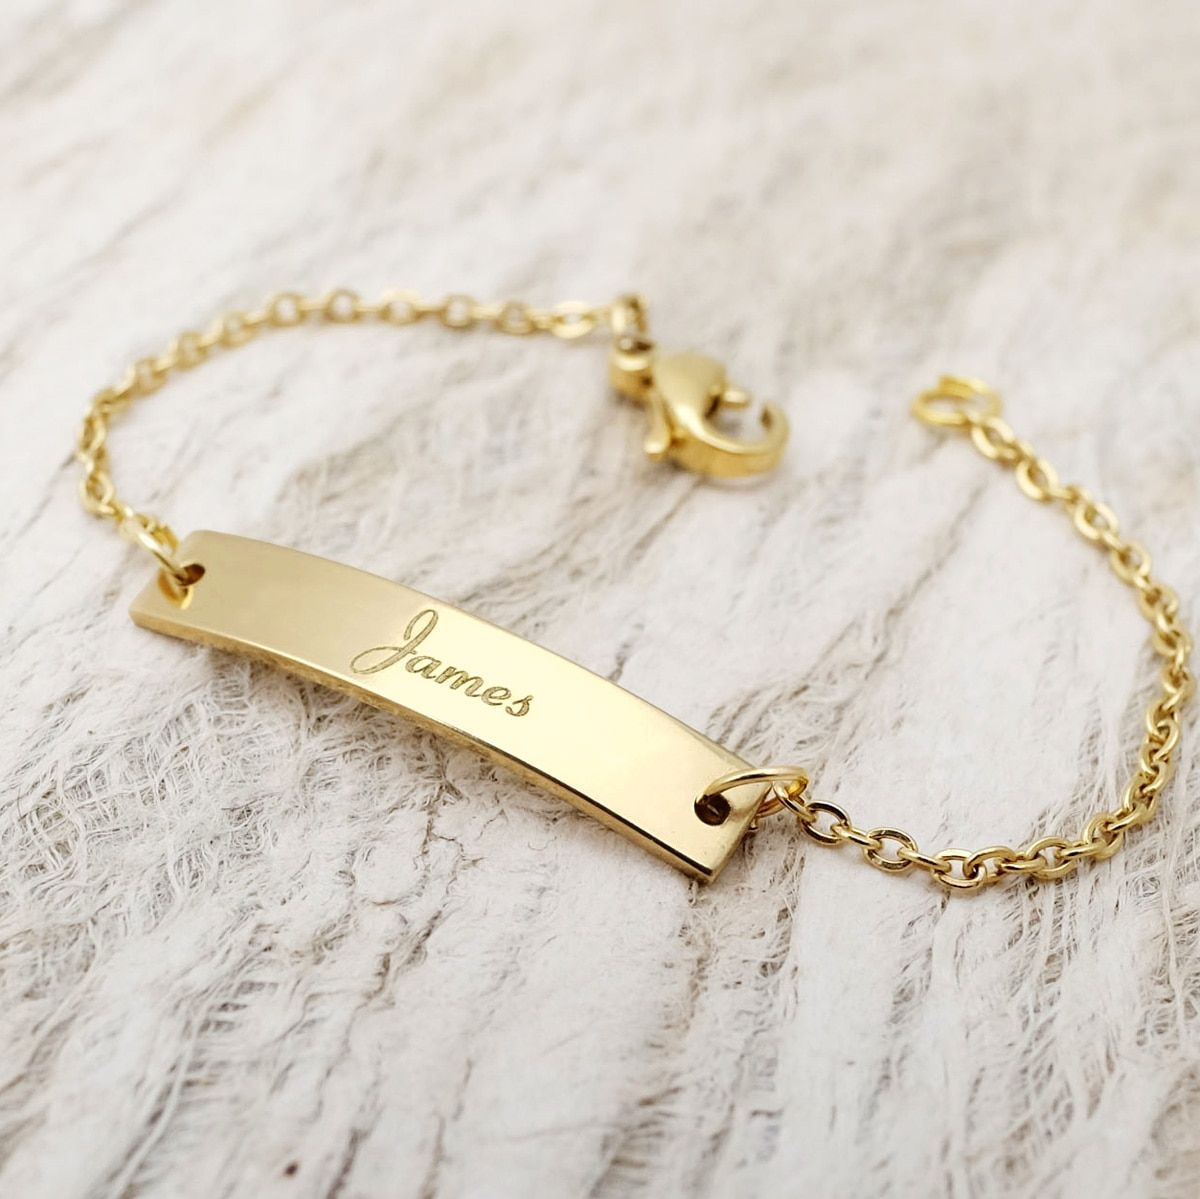 Gold Plated ID Bracelet Name Bracelet,Coordinates Bracelet Personalize Yellow Gold Plated Stainless Steel ID Bar Bracelet Gift for Dad